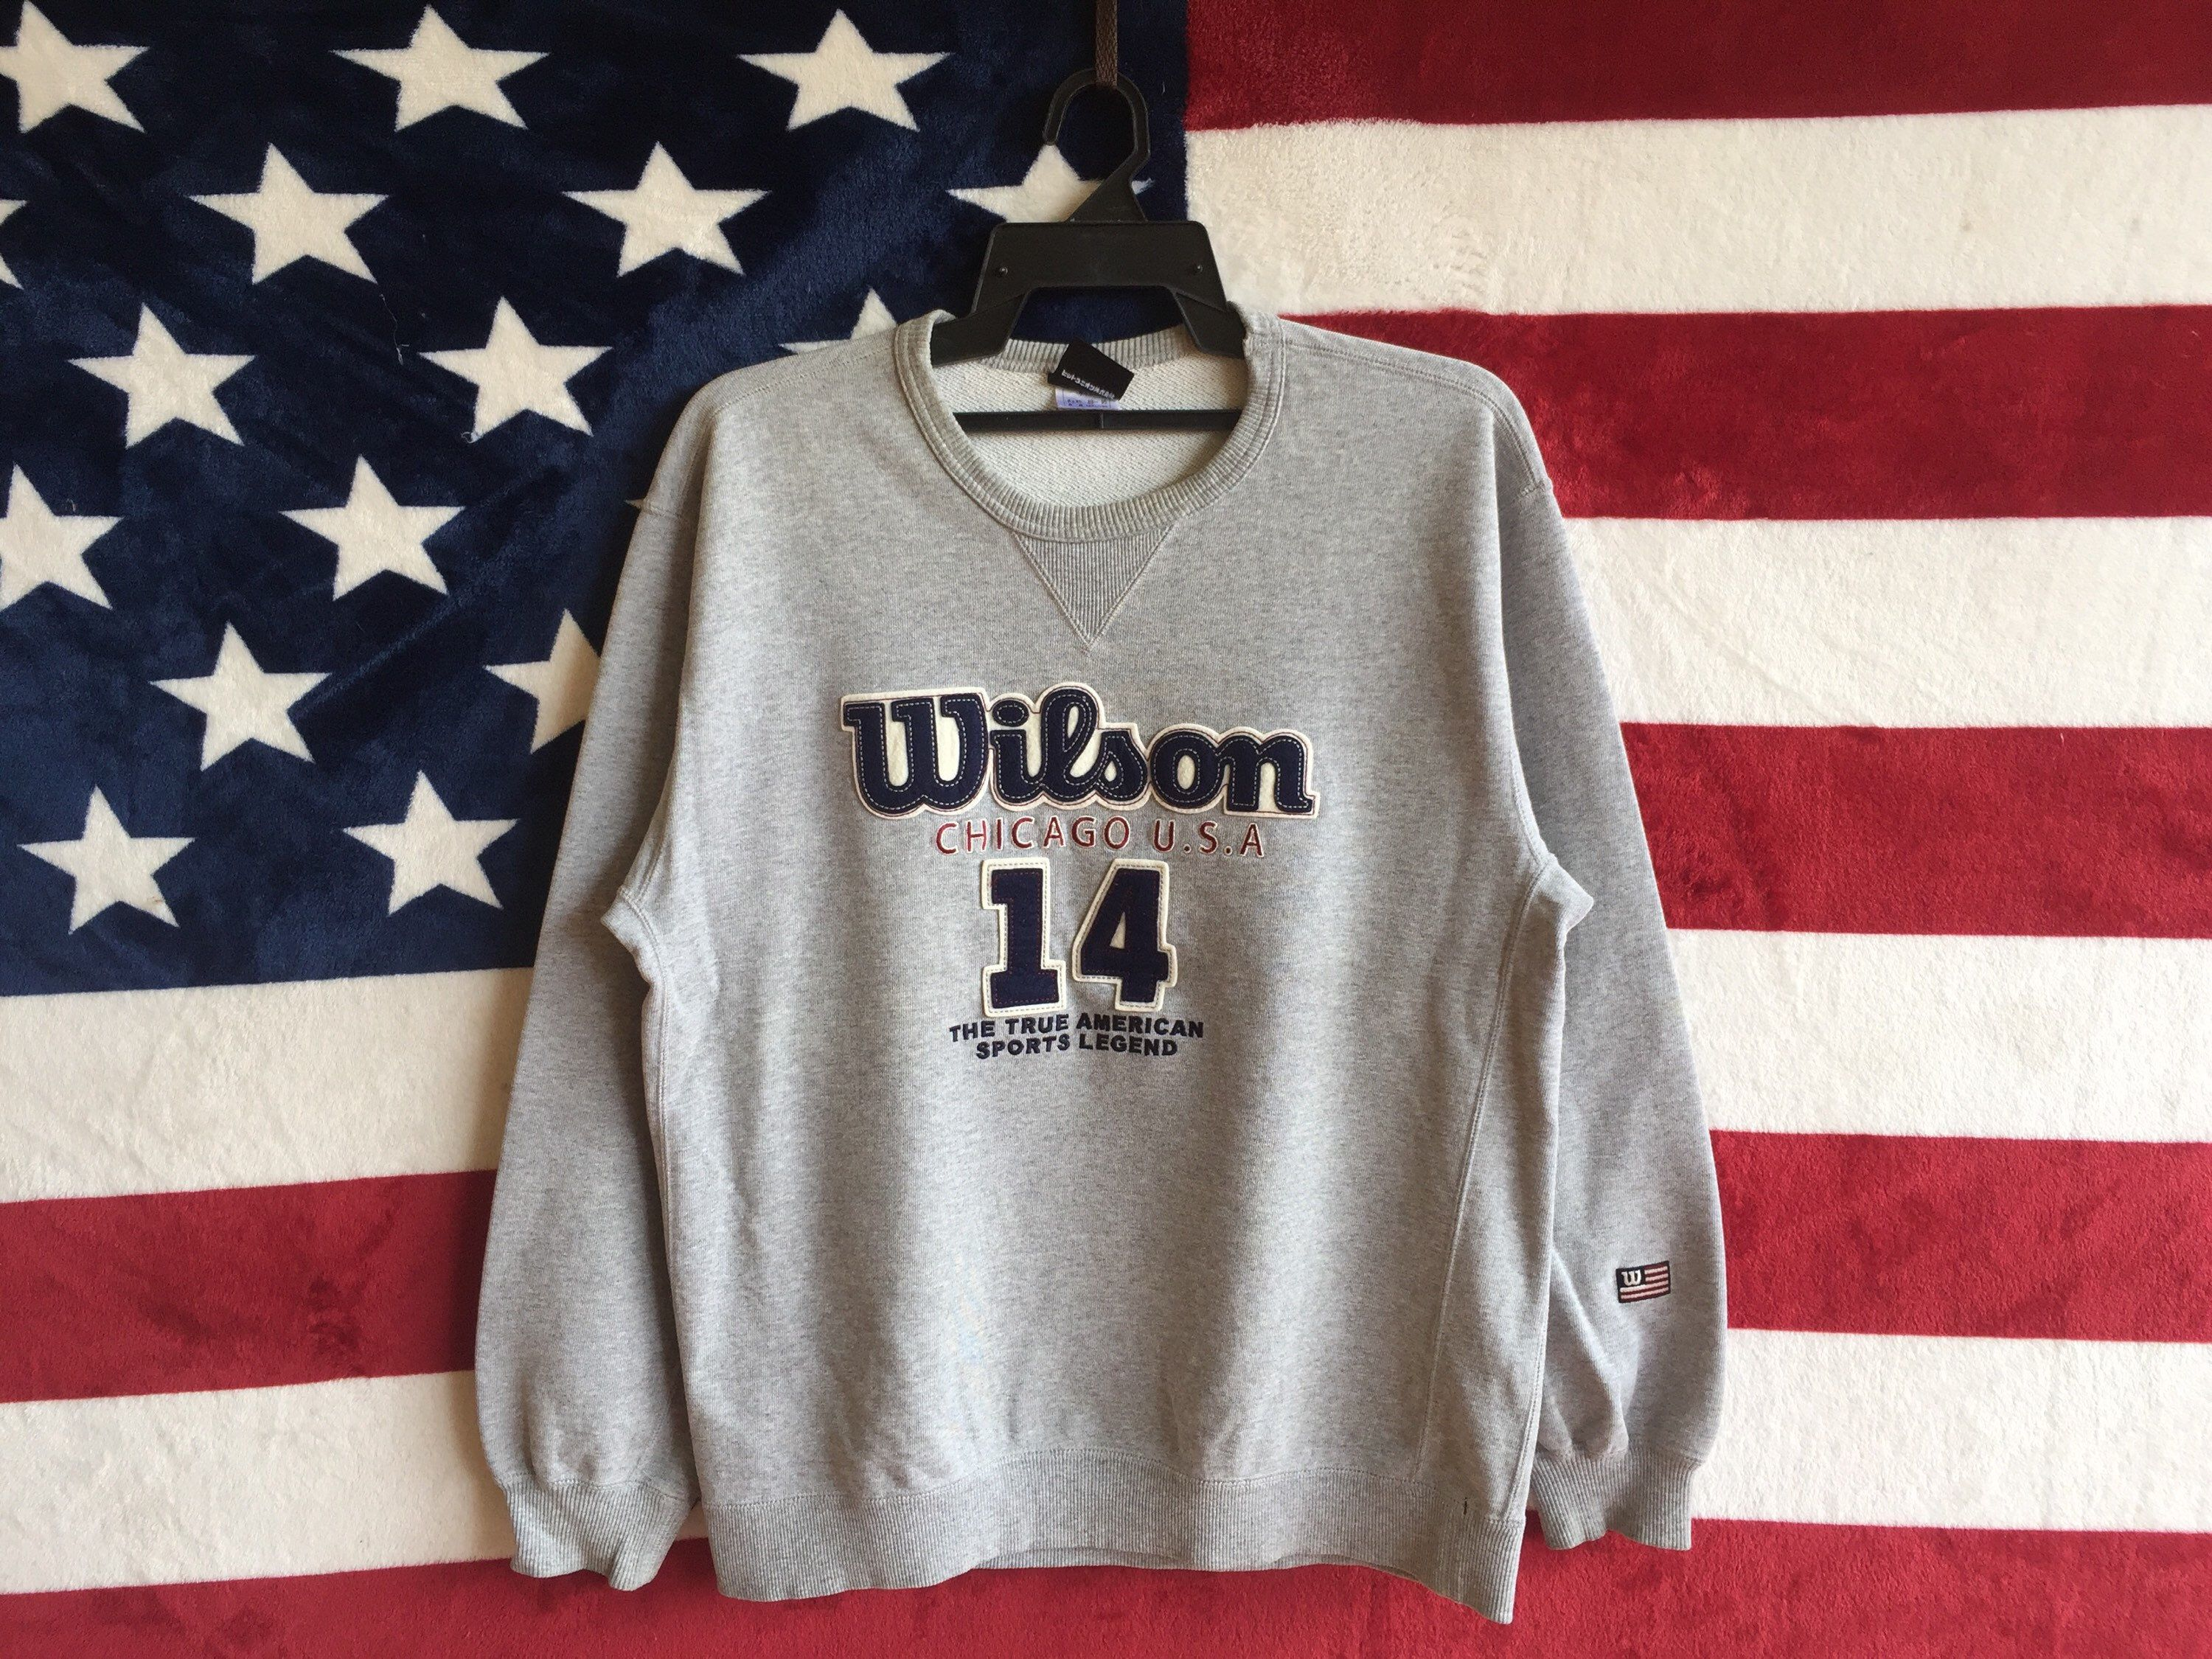 Excited To Share The Latest Addition To My Etsy Shop Vintage 90s Wilson Chicago Usa Sweatshirt Grey Colour Wilson Usa Sweatshirt Grey Sweatshirt Sweatshirts [ 2250 x 3000 Pixel ]